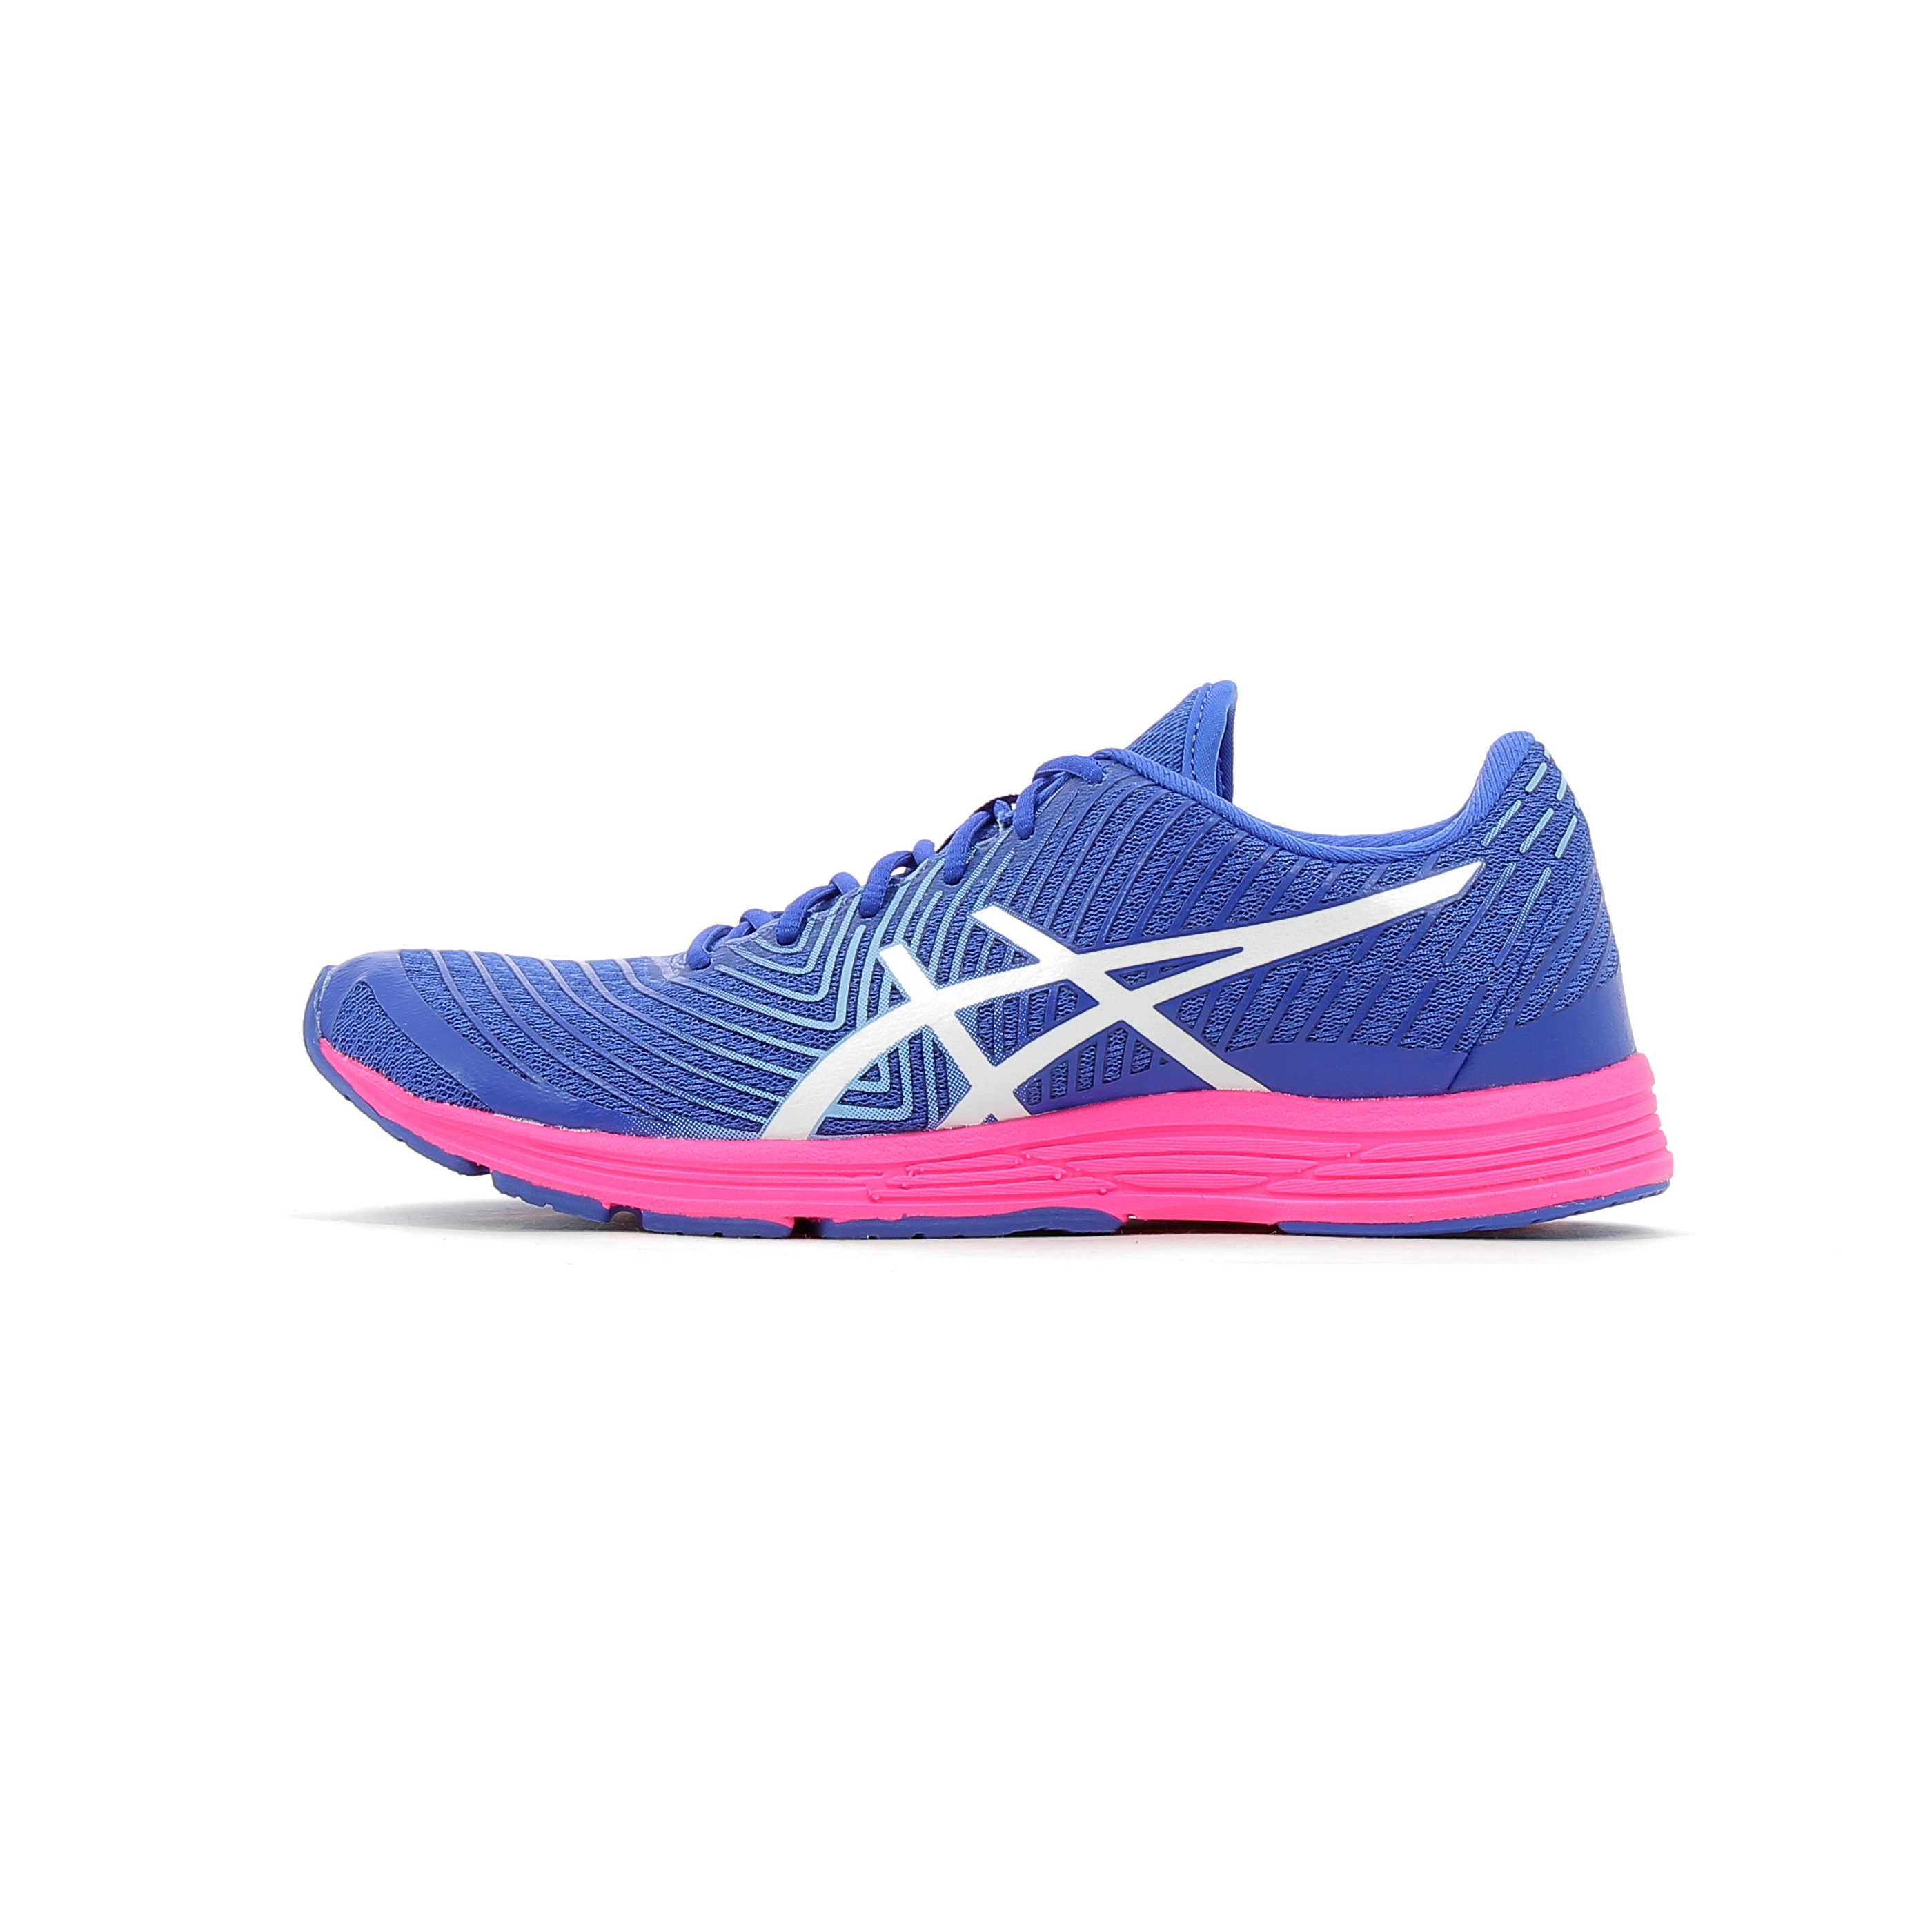 rich and magnificent price buy popular Chaussure de Running Asics Gel Hyper Tri 3